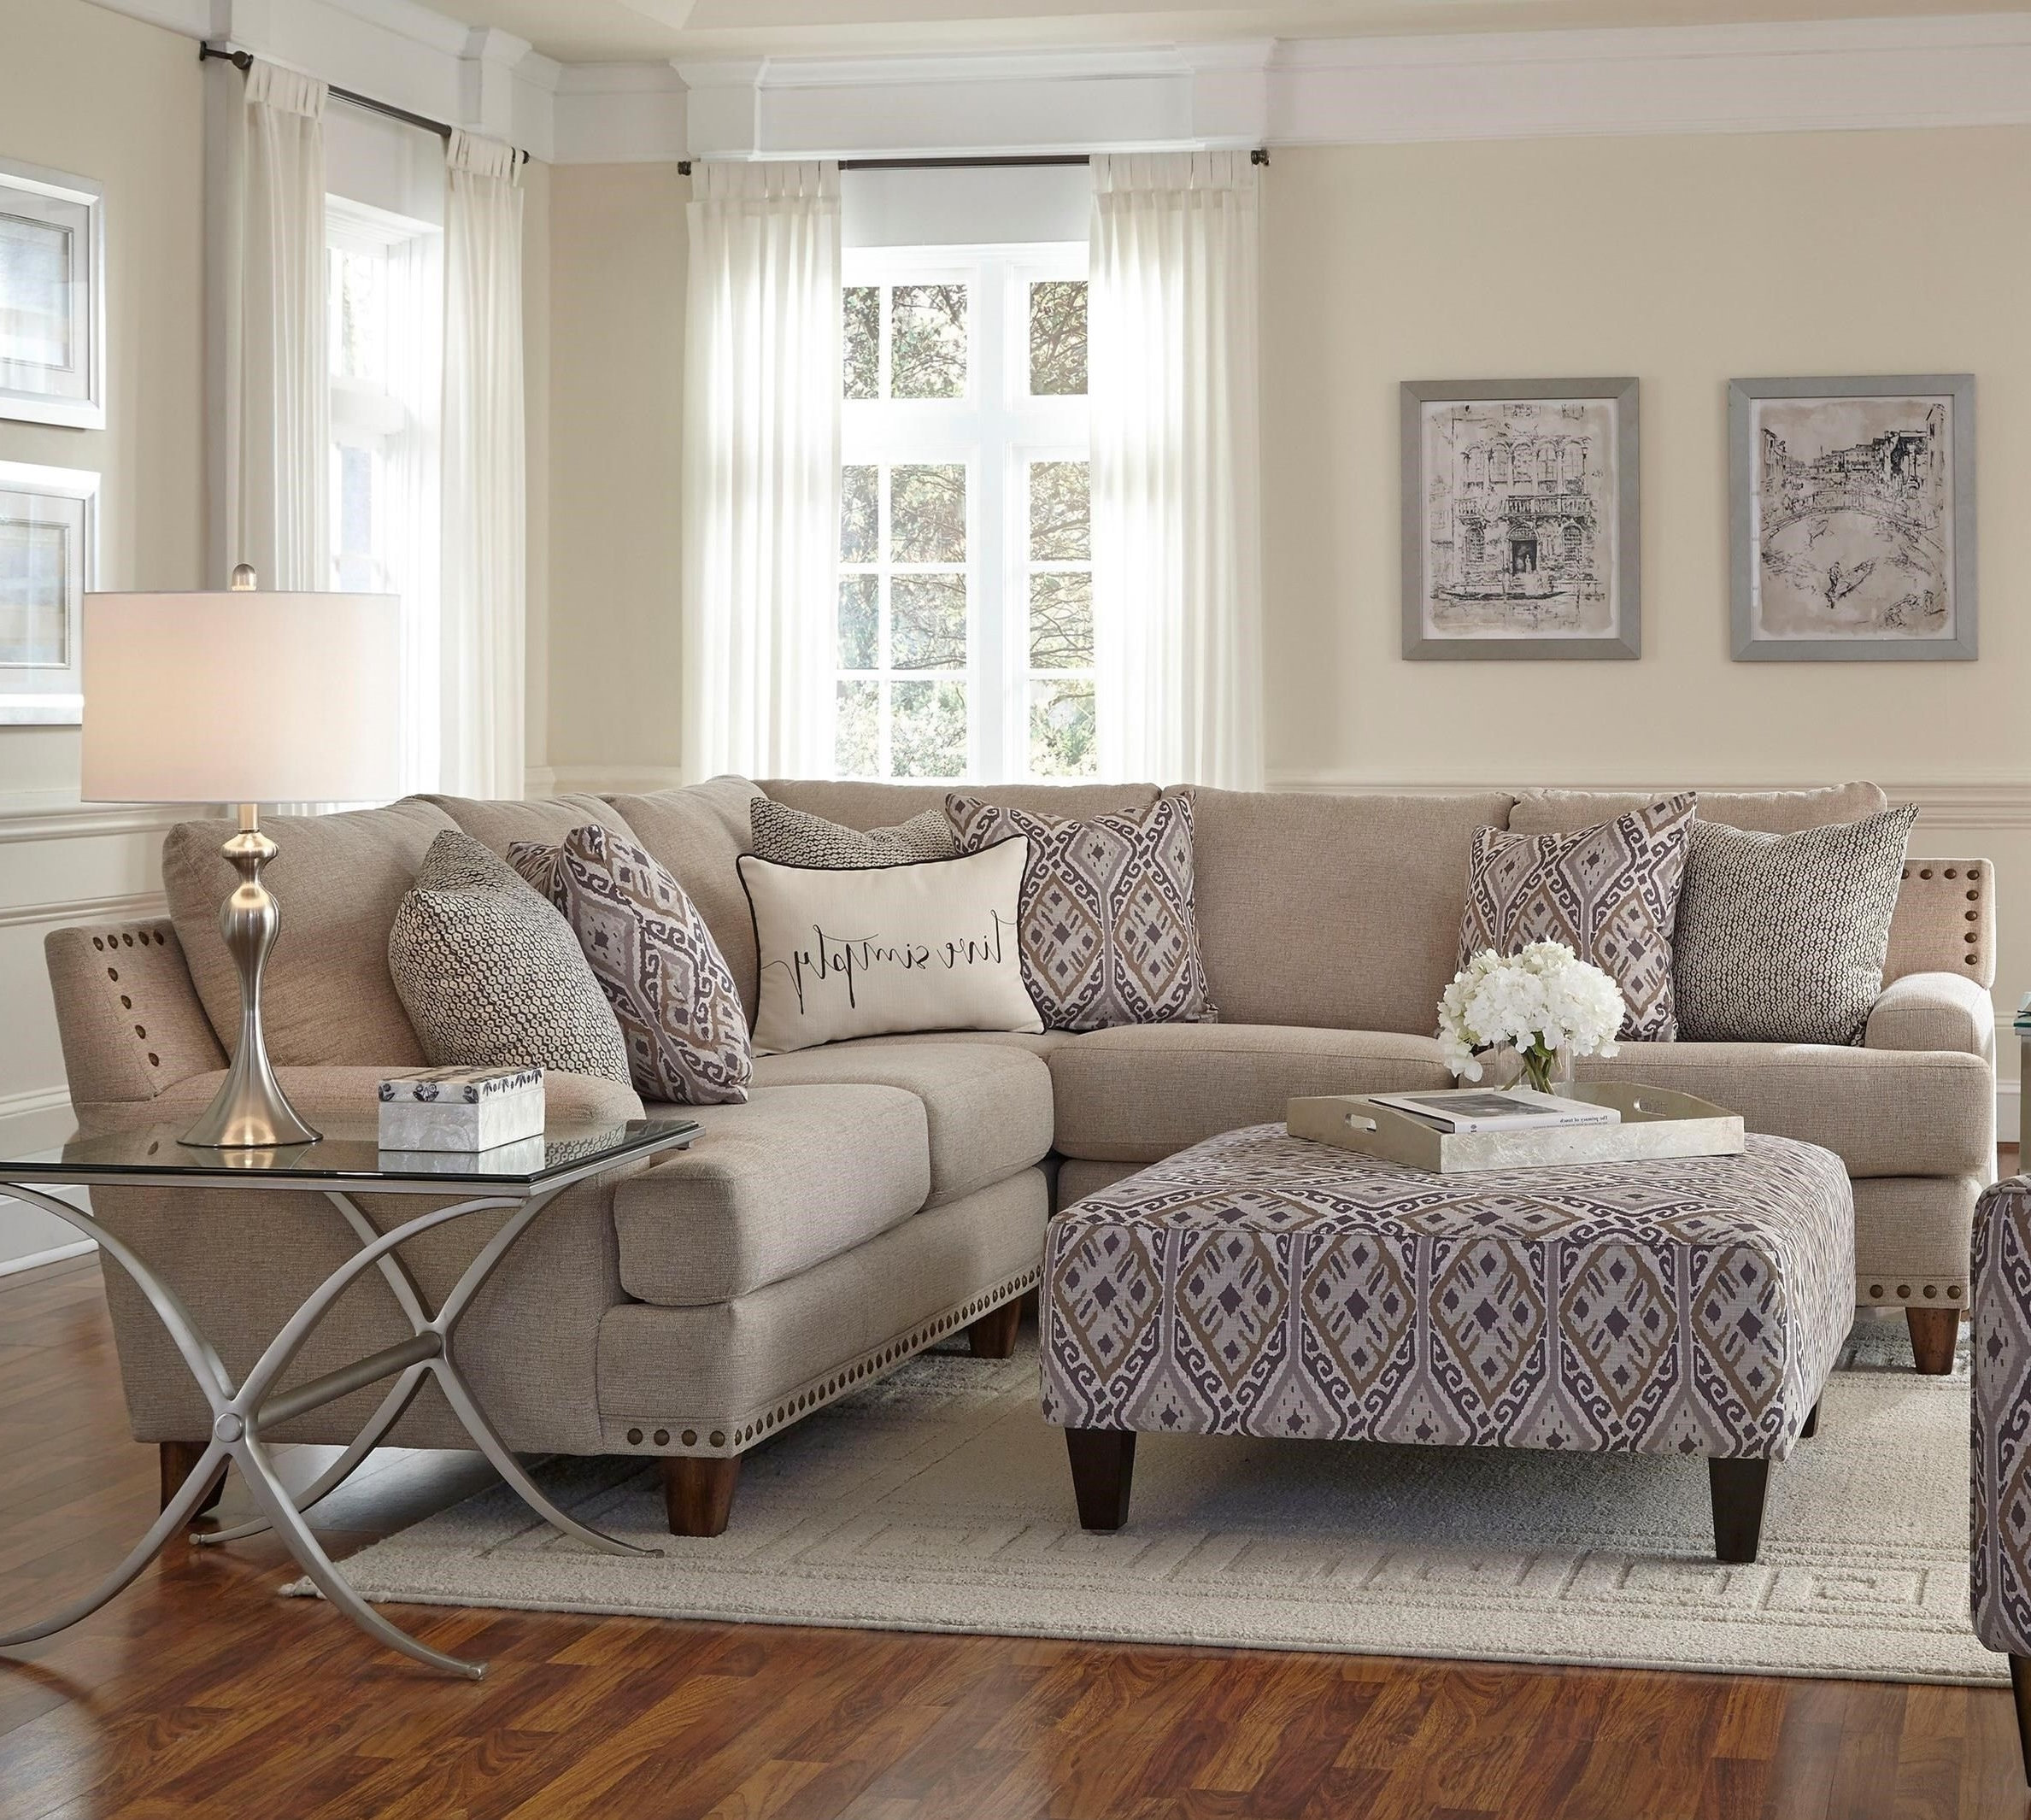 2018 Franklin Julienne Sectional Sofa With Four Seats – Miskelly In Jackson Ms Sectional Sofas (View 8 of 20)